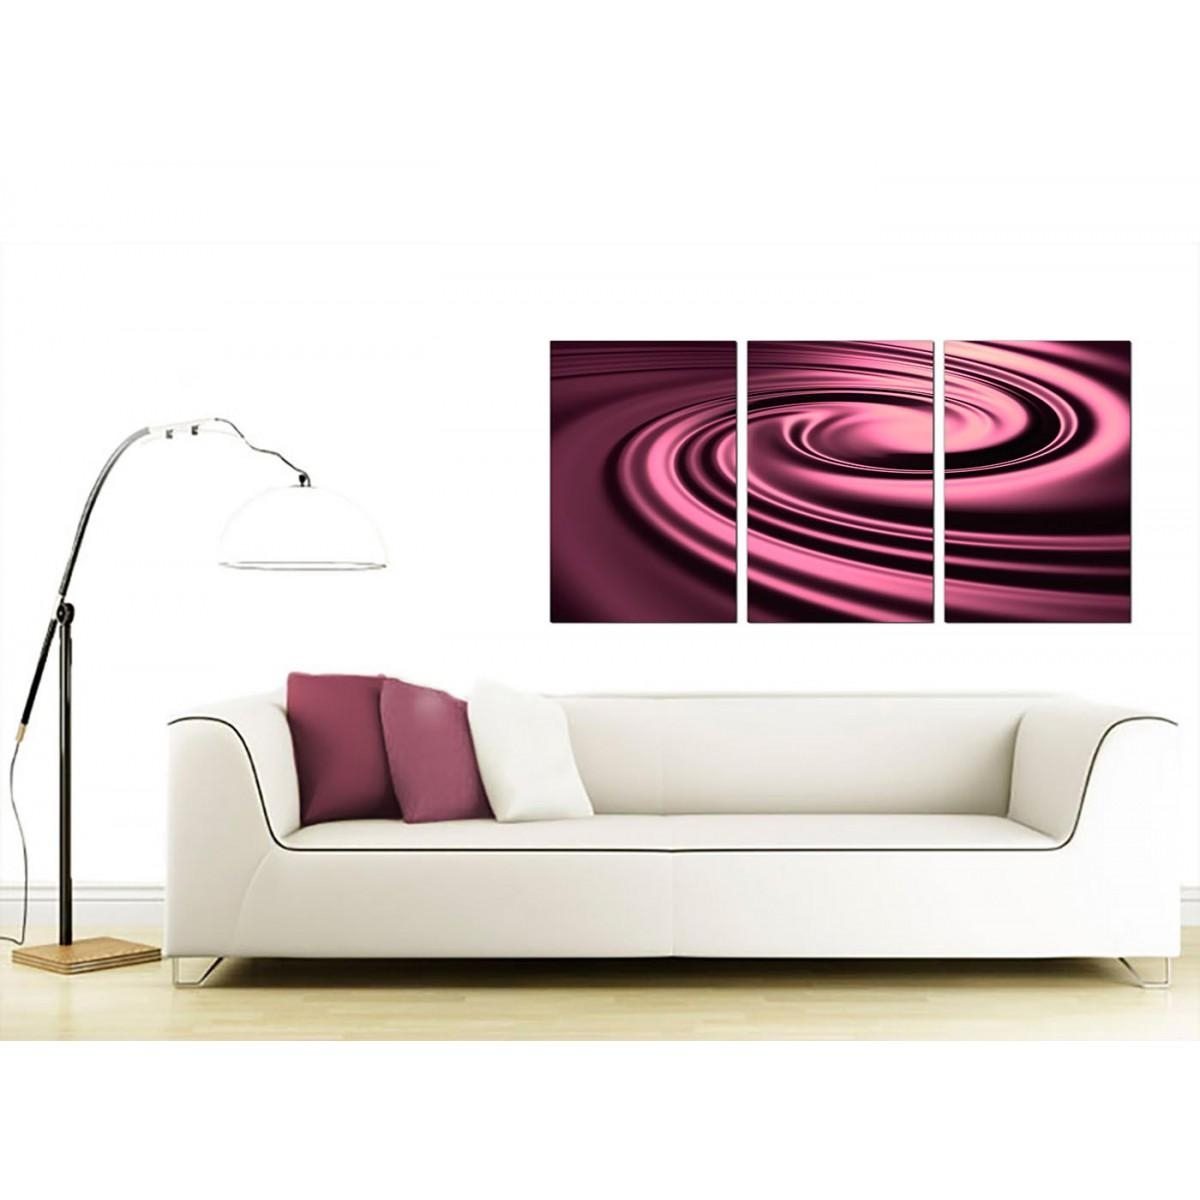 Cheap Abstract Canvas Wall Art 3 Part In Plum With Plum Coloured Wall Art (View 14 of 20)